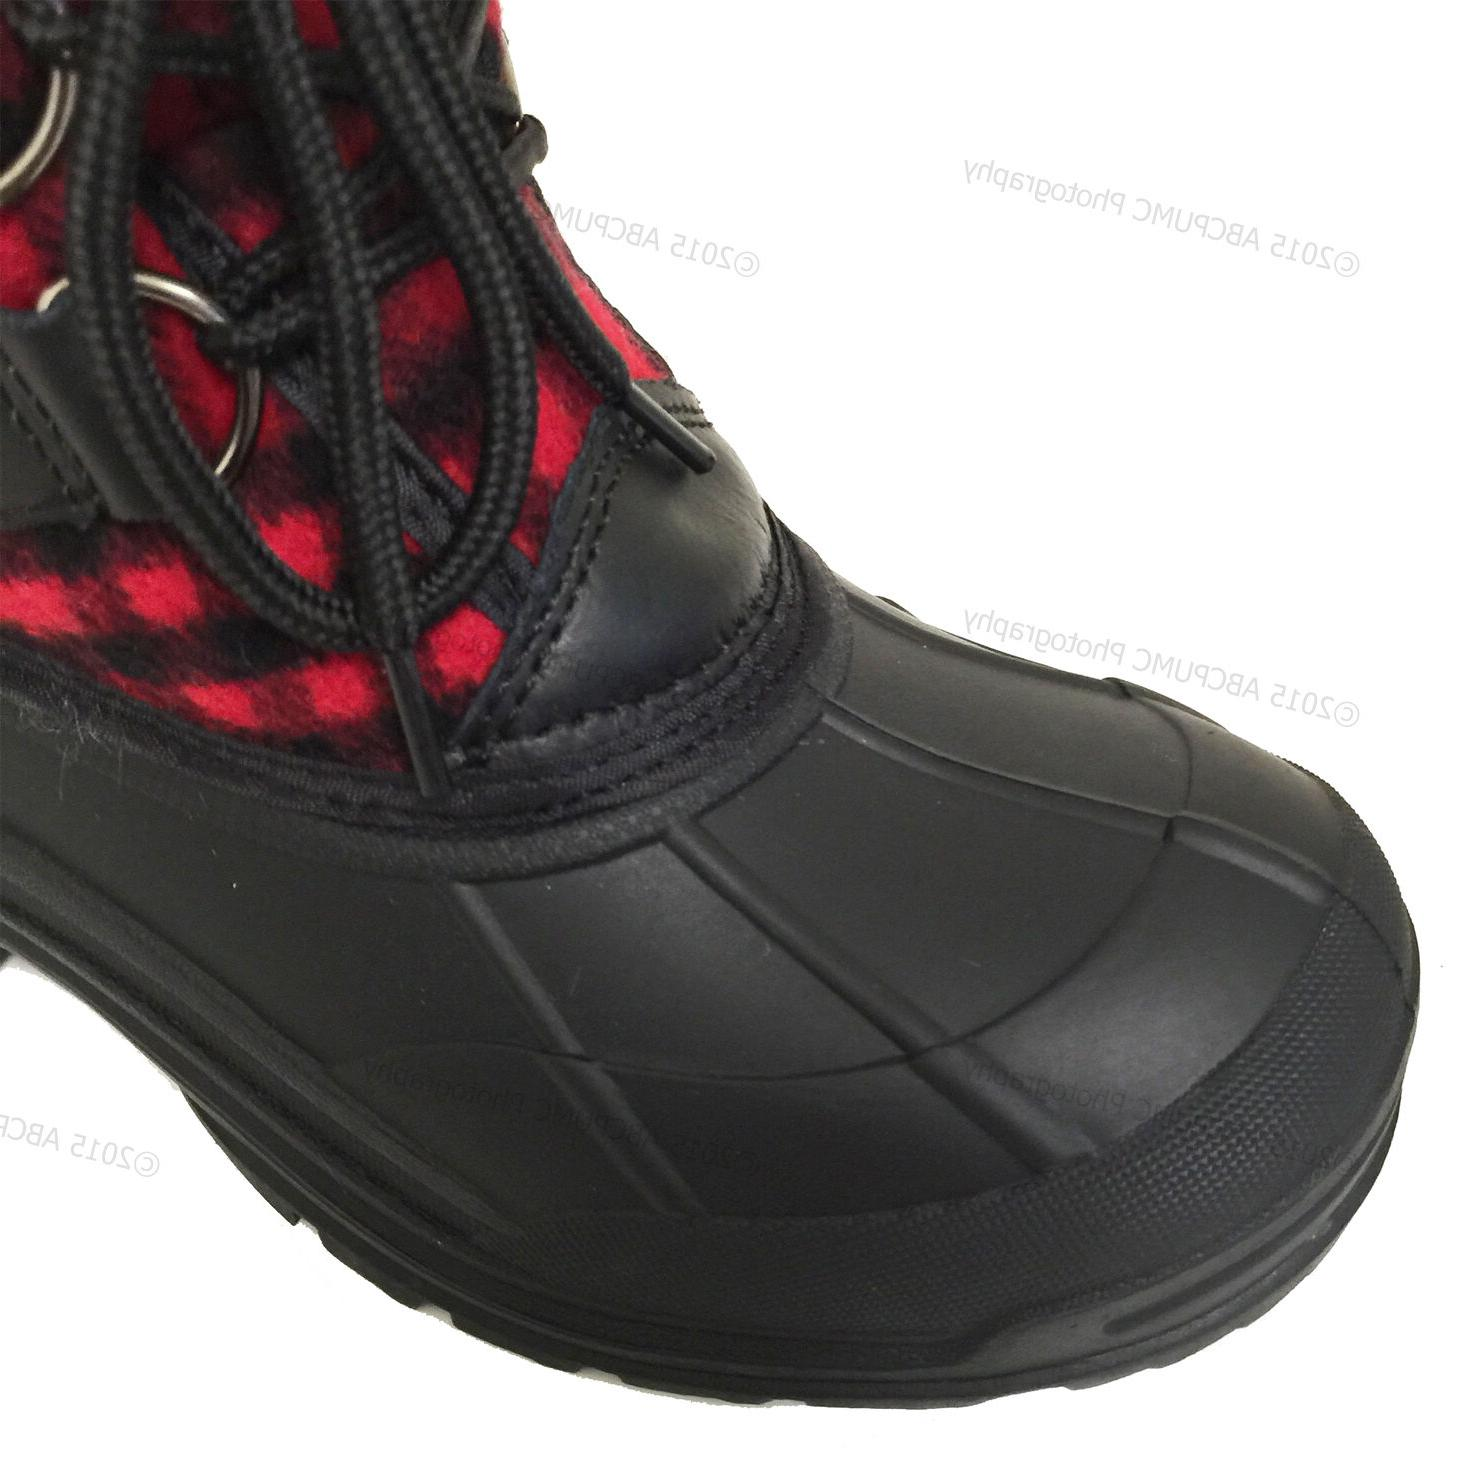 Womens Winter Boots Flannel Plaid Insulated Waterproof